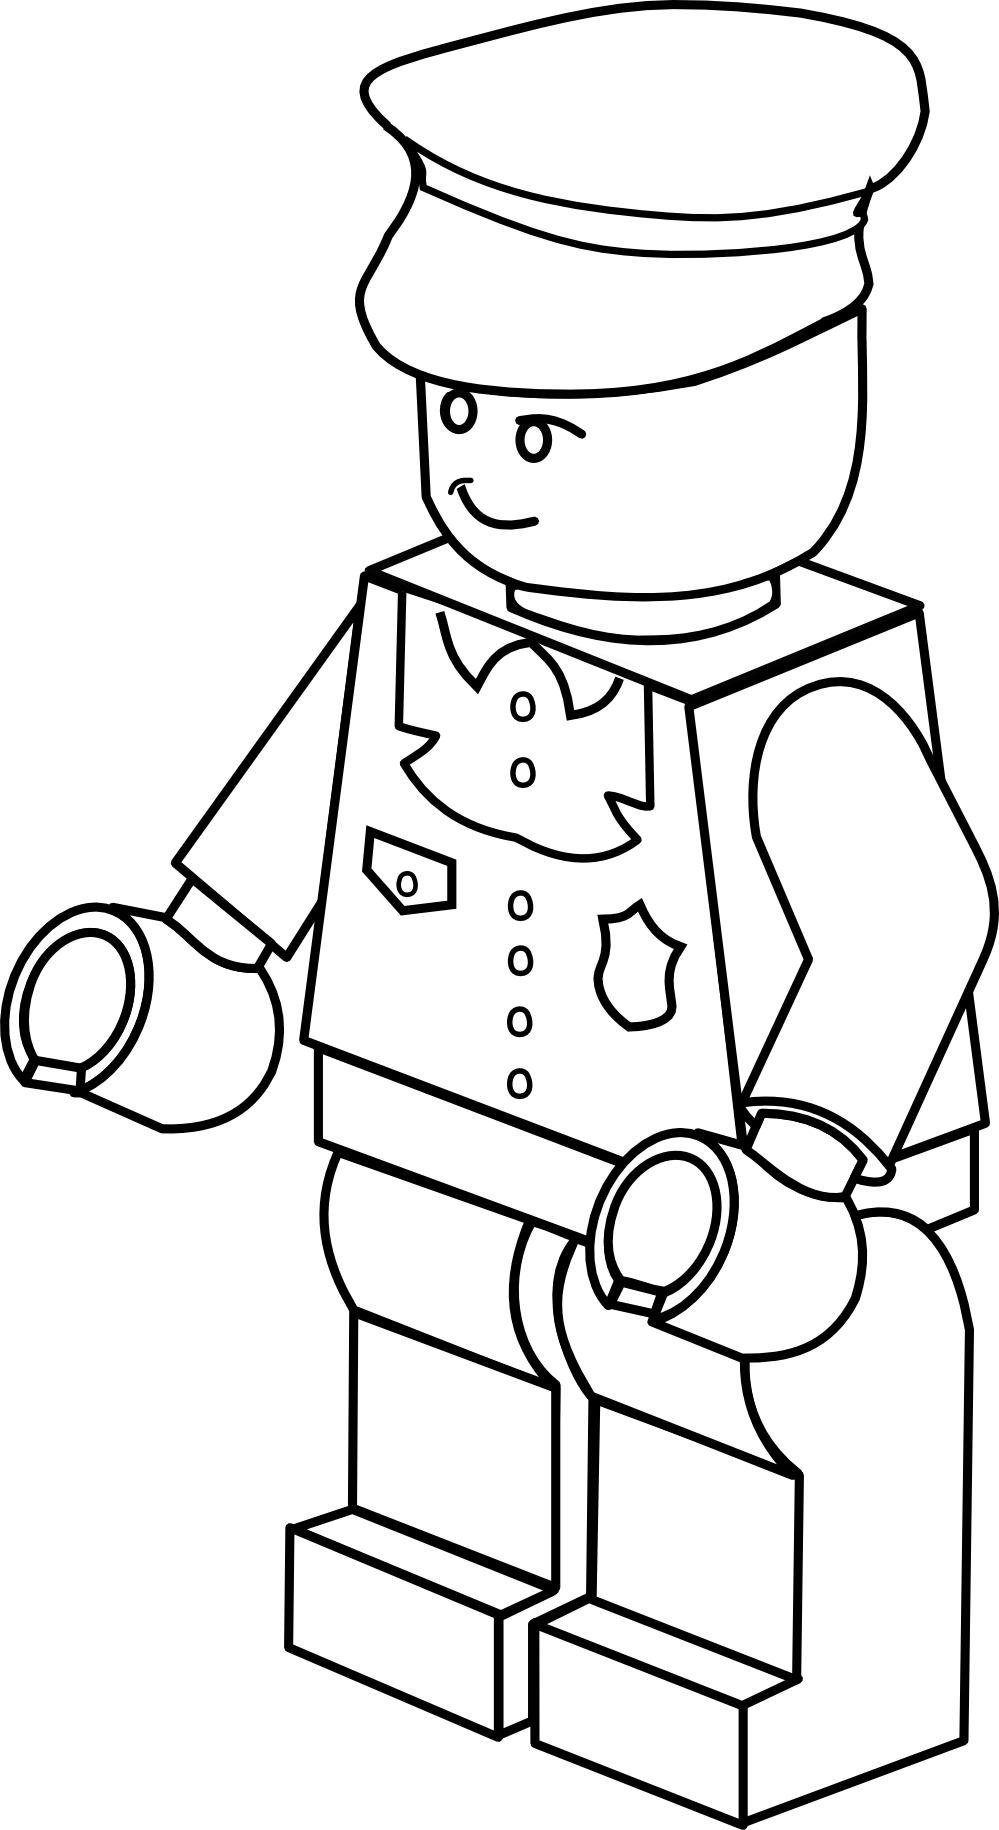 Policeman clipart police suit. Clipartist info lego town